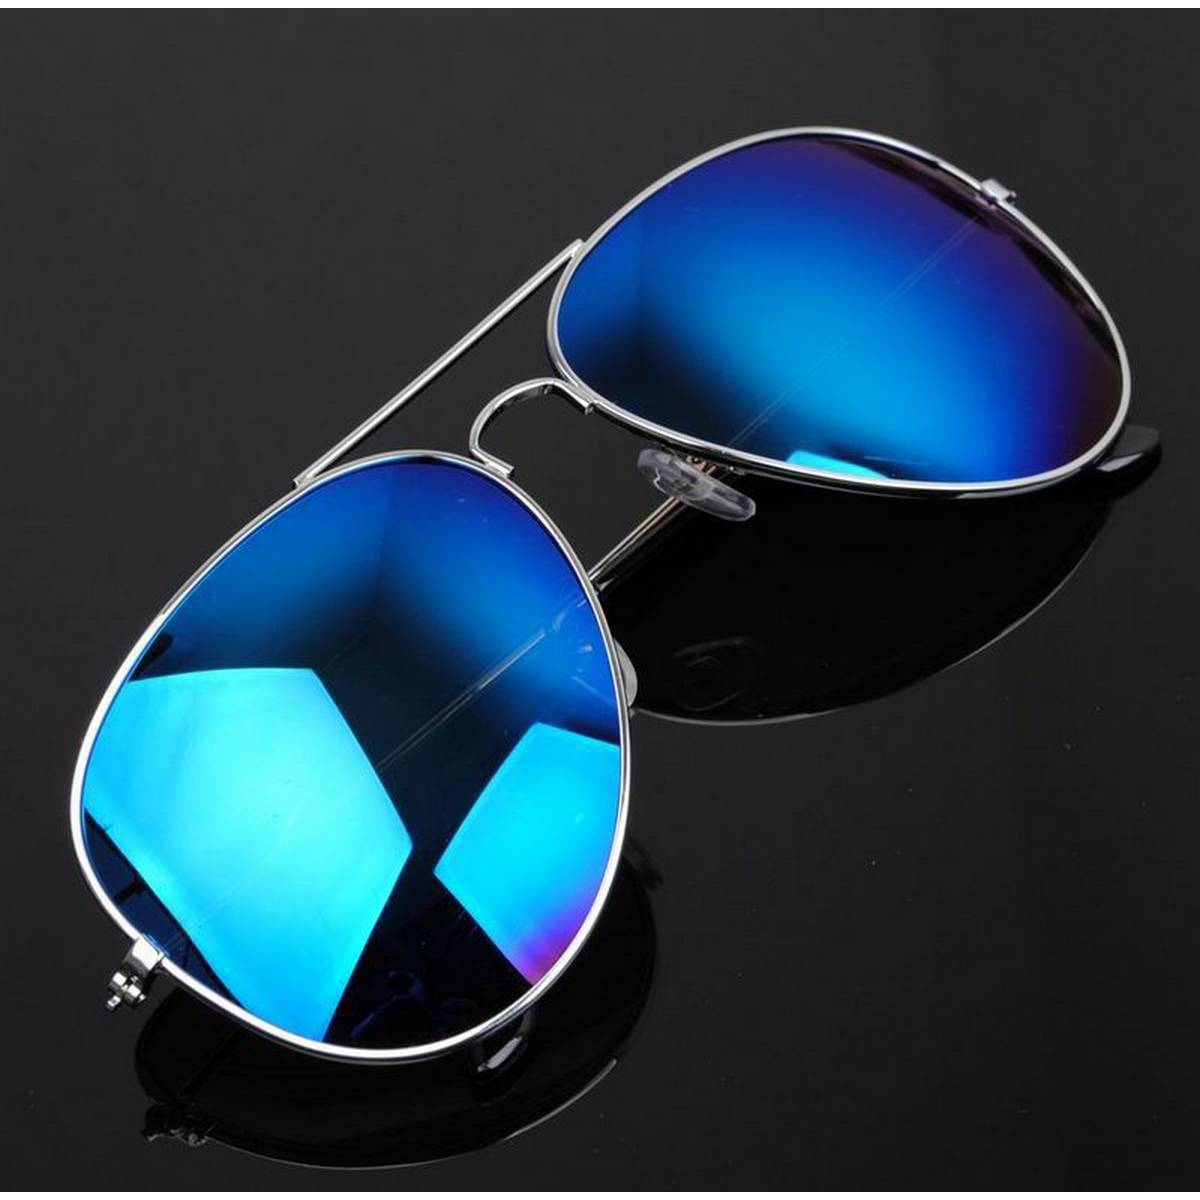 Best Quality New Aviator Design Blue Color Stylish Sunglasses with Silver Frame For Men/Women